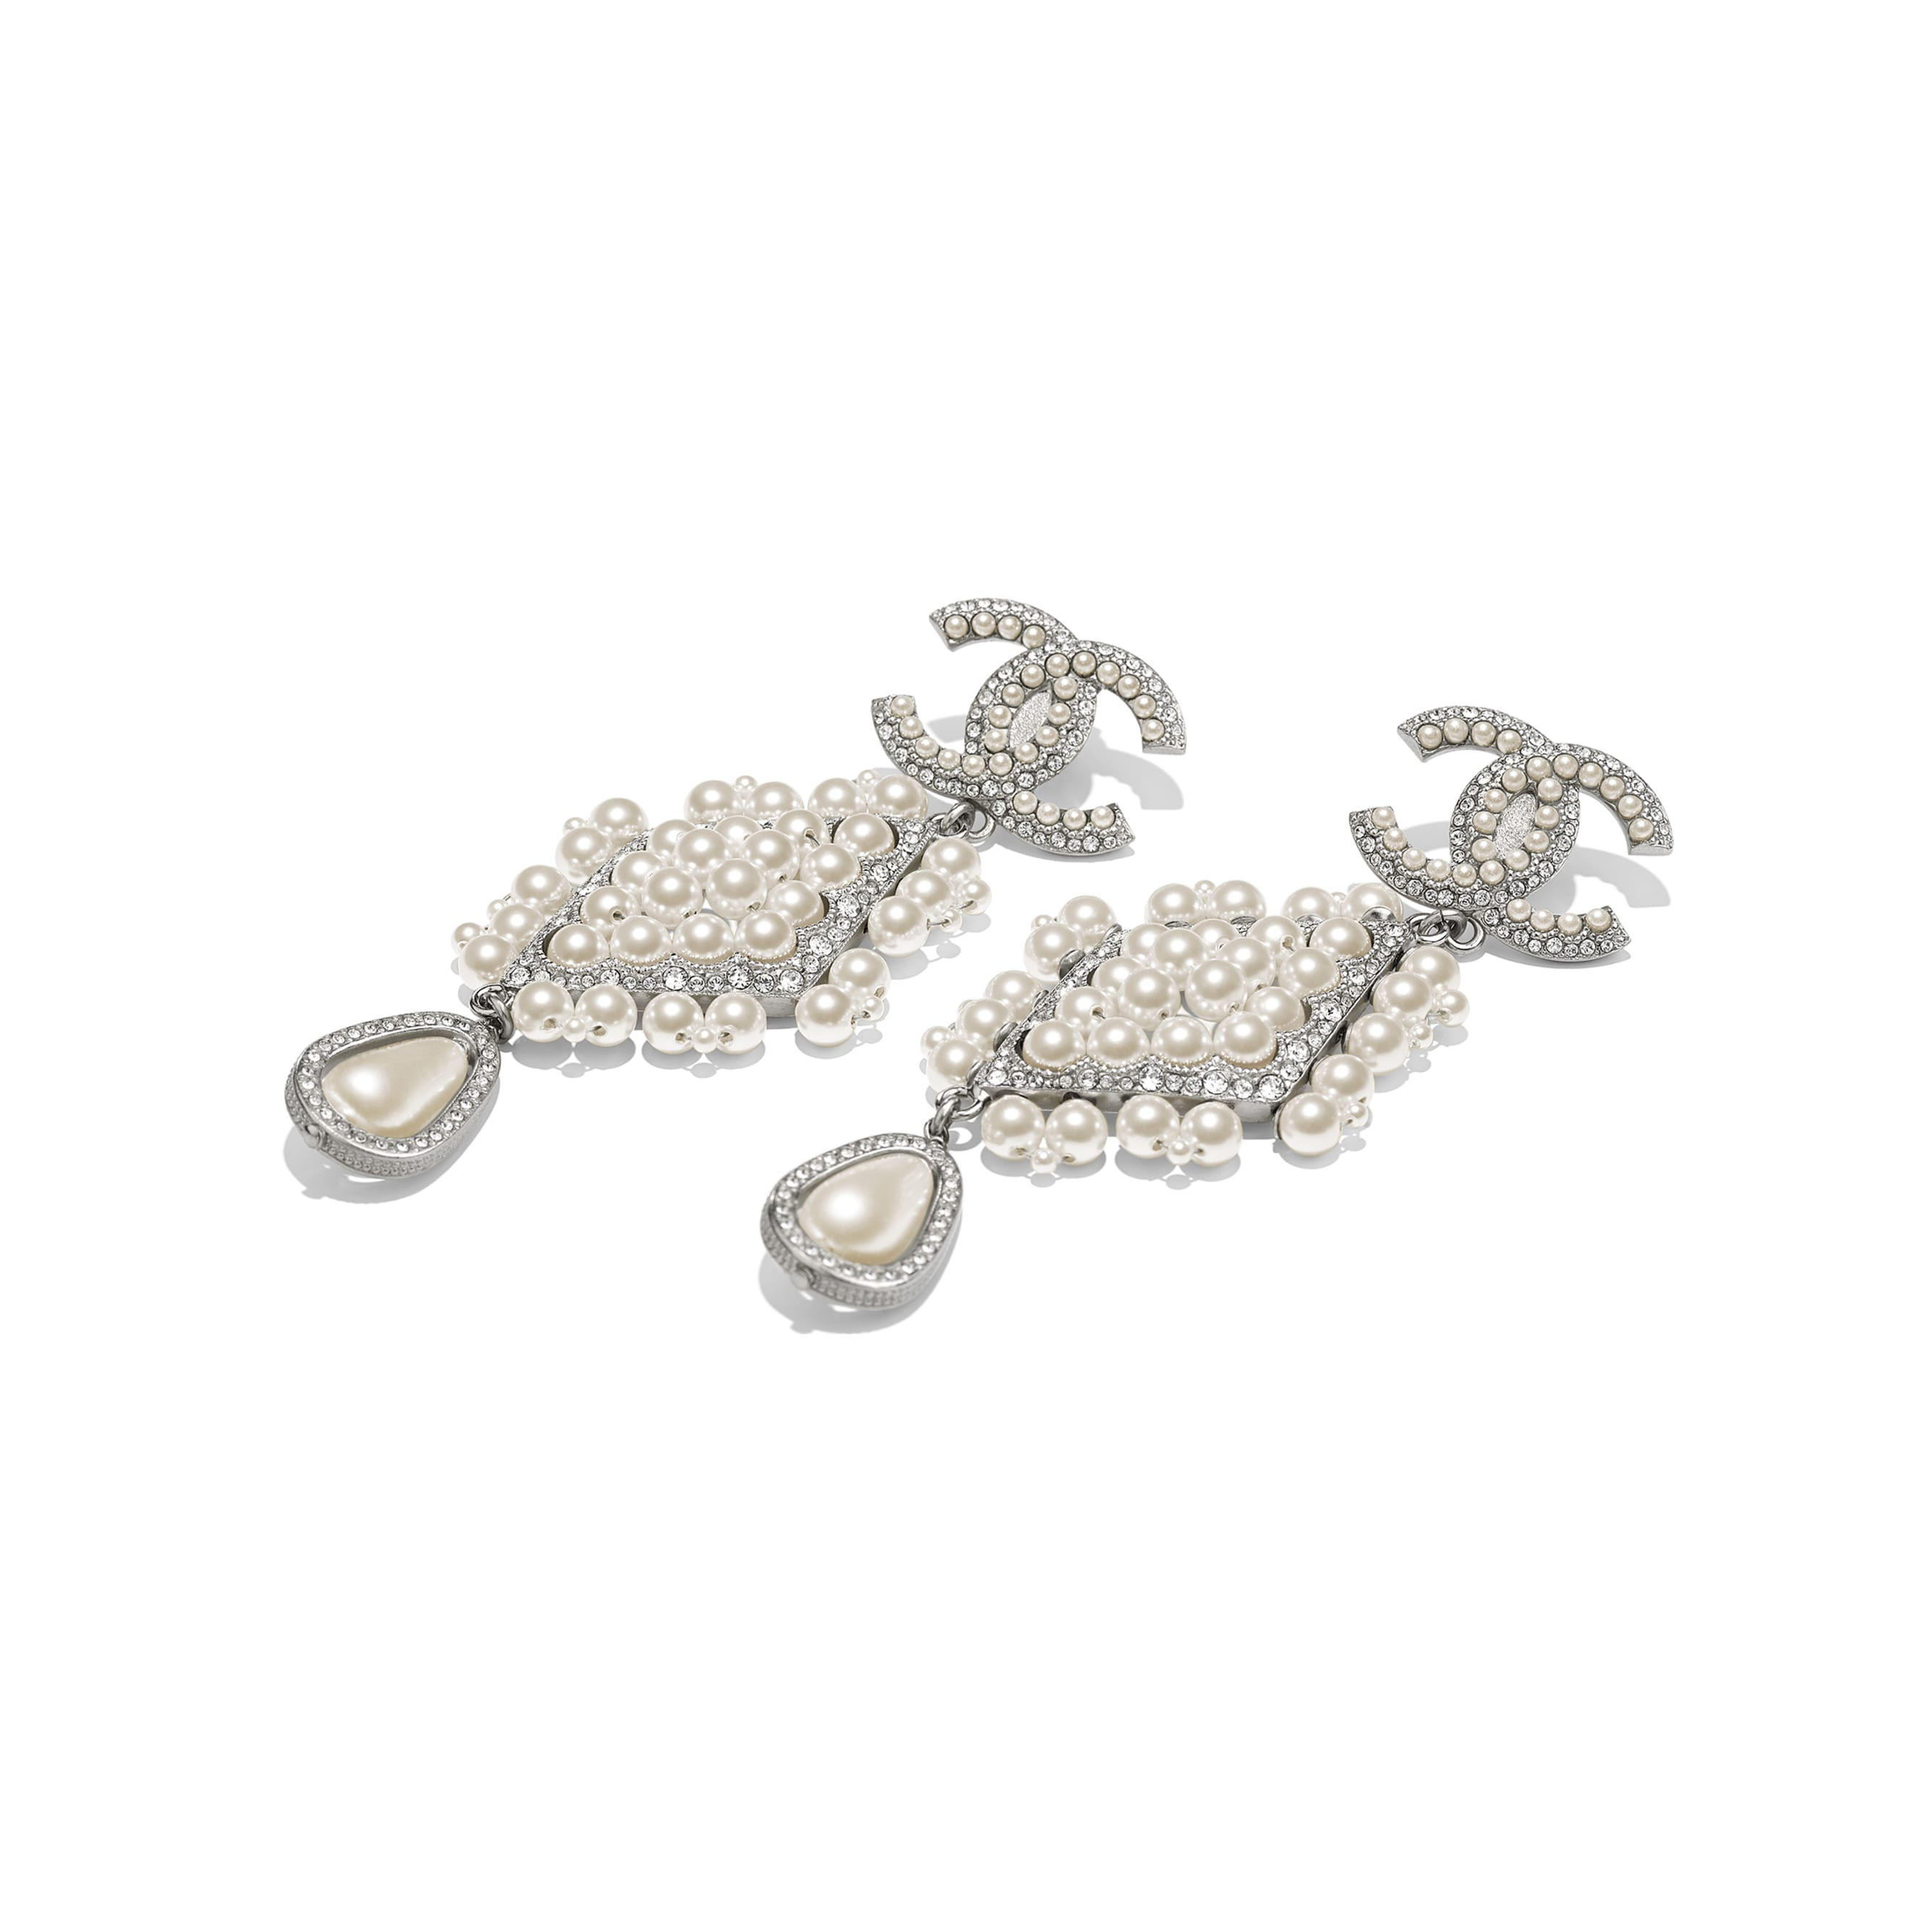 Clip-on Earrings - Silver, Pearly White & Crystal - Metal, Glass Pearls & Strass - Alternative view - see standard sized version